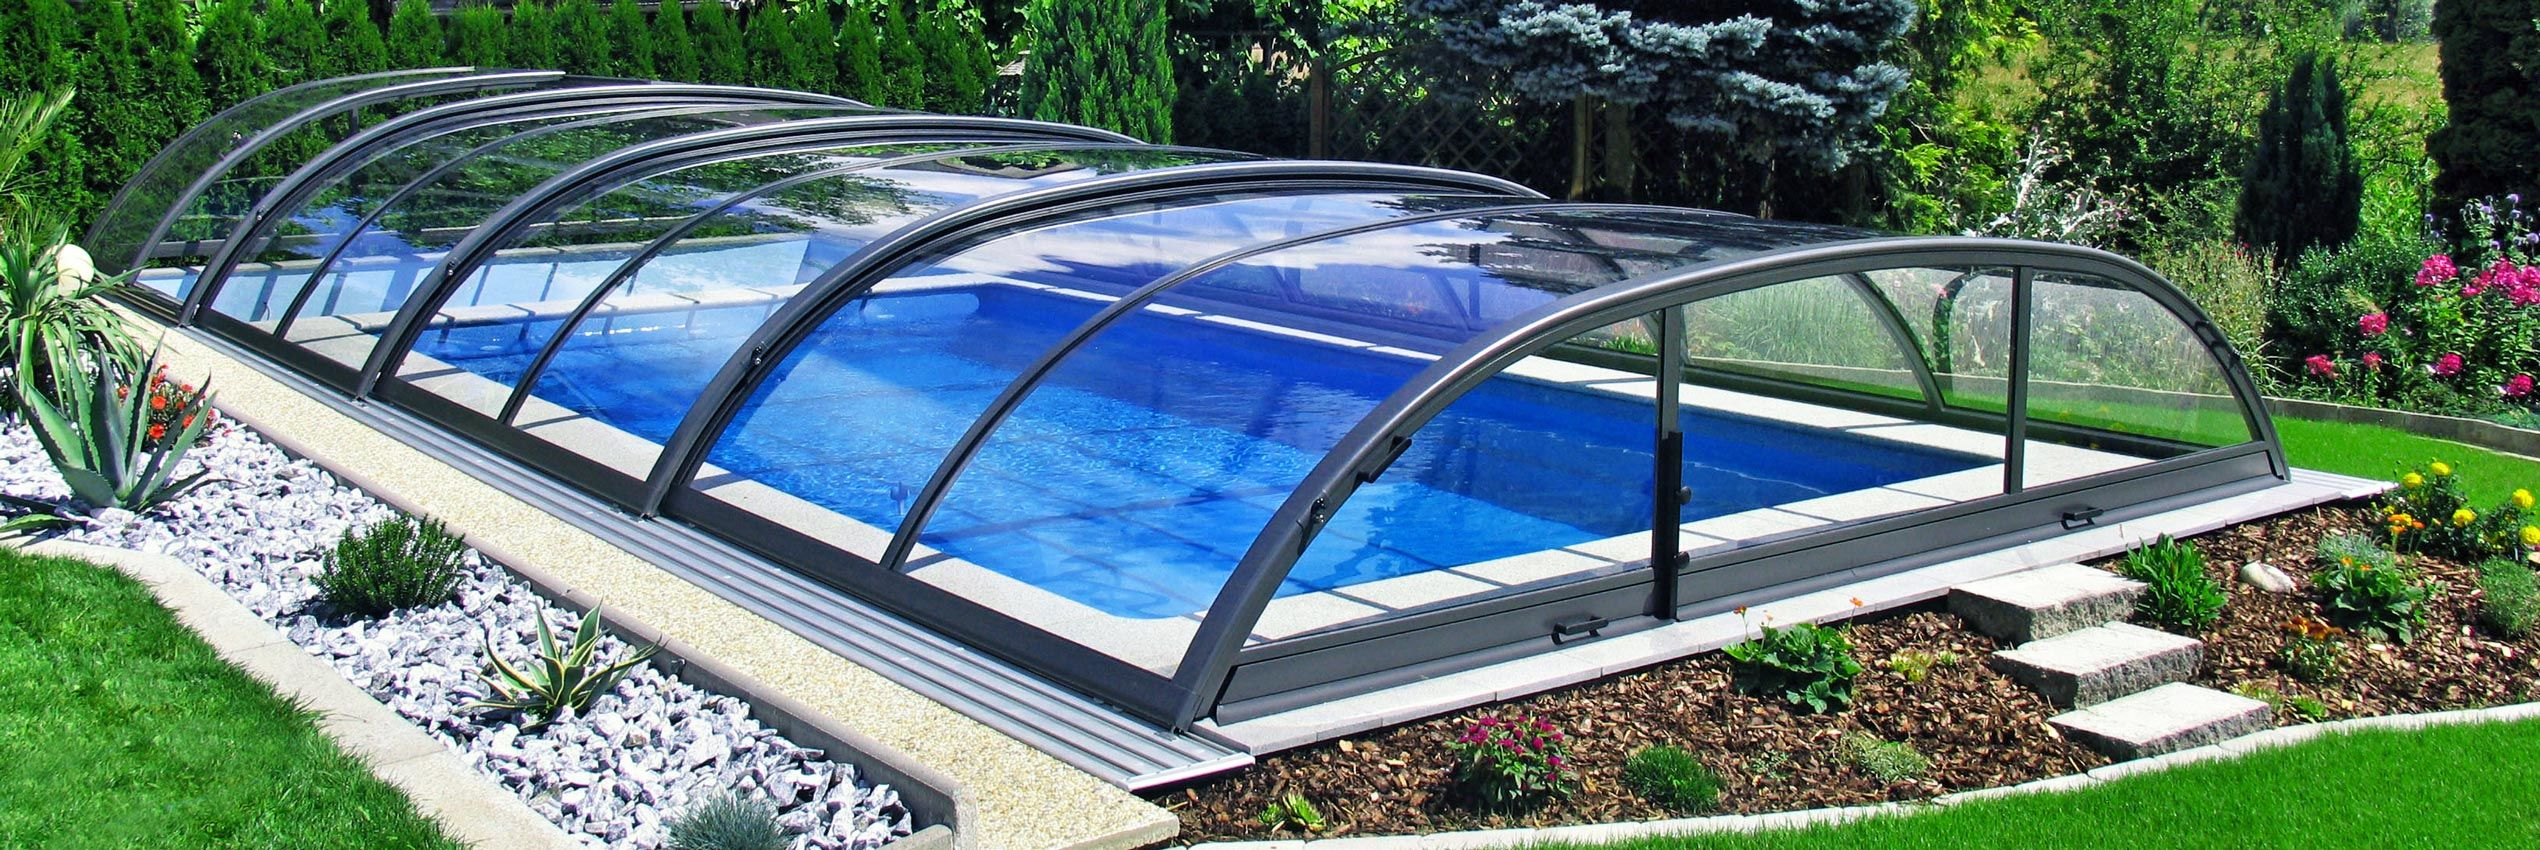 Retractable Pool Enclosures for your swimming pool ...